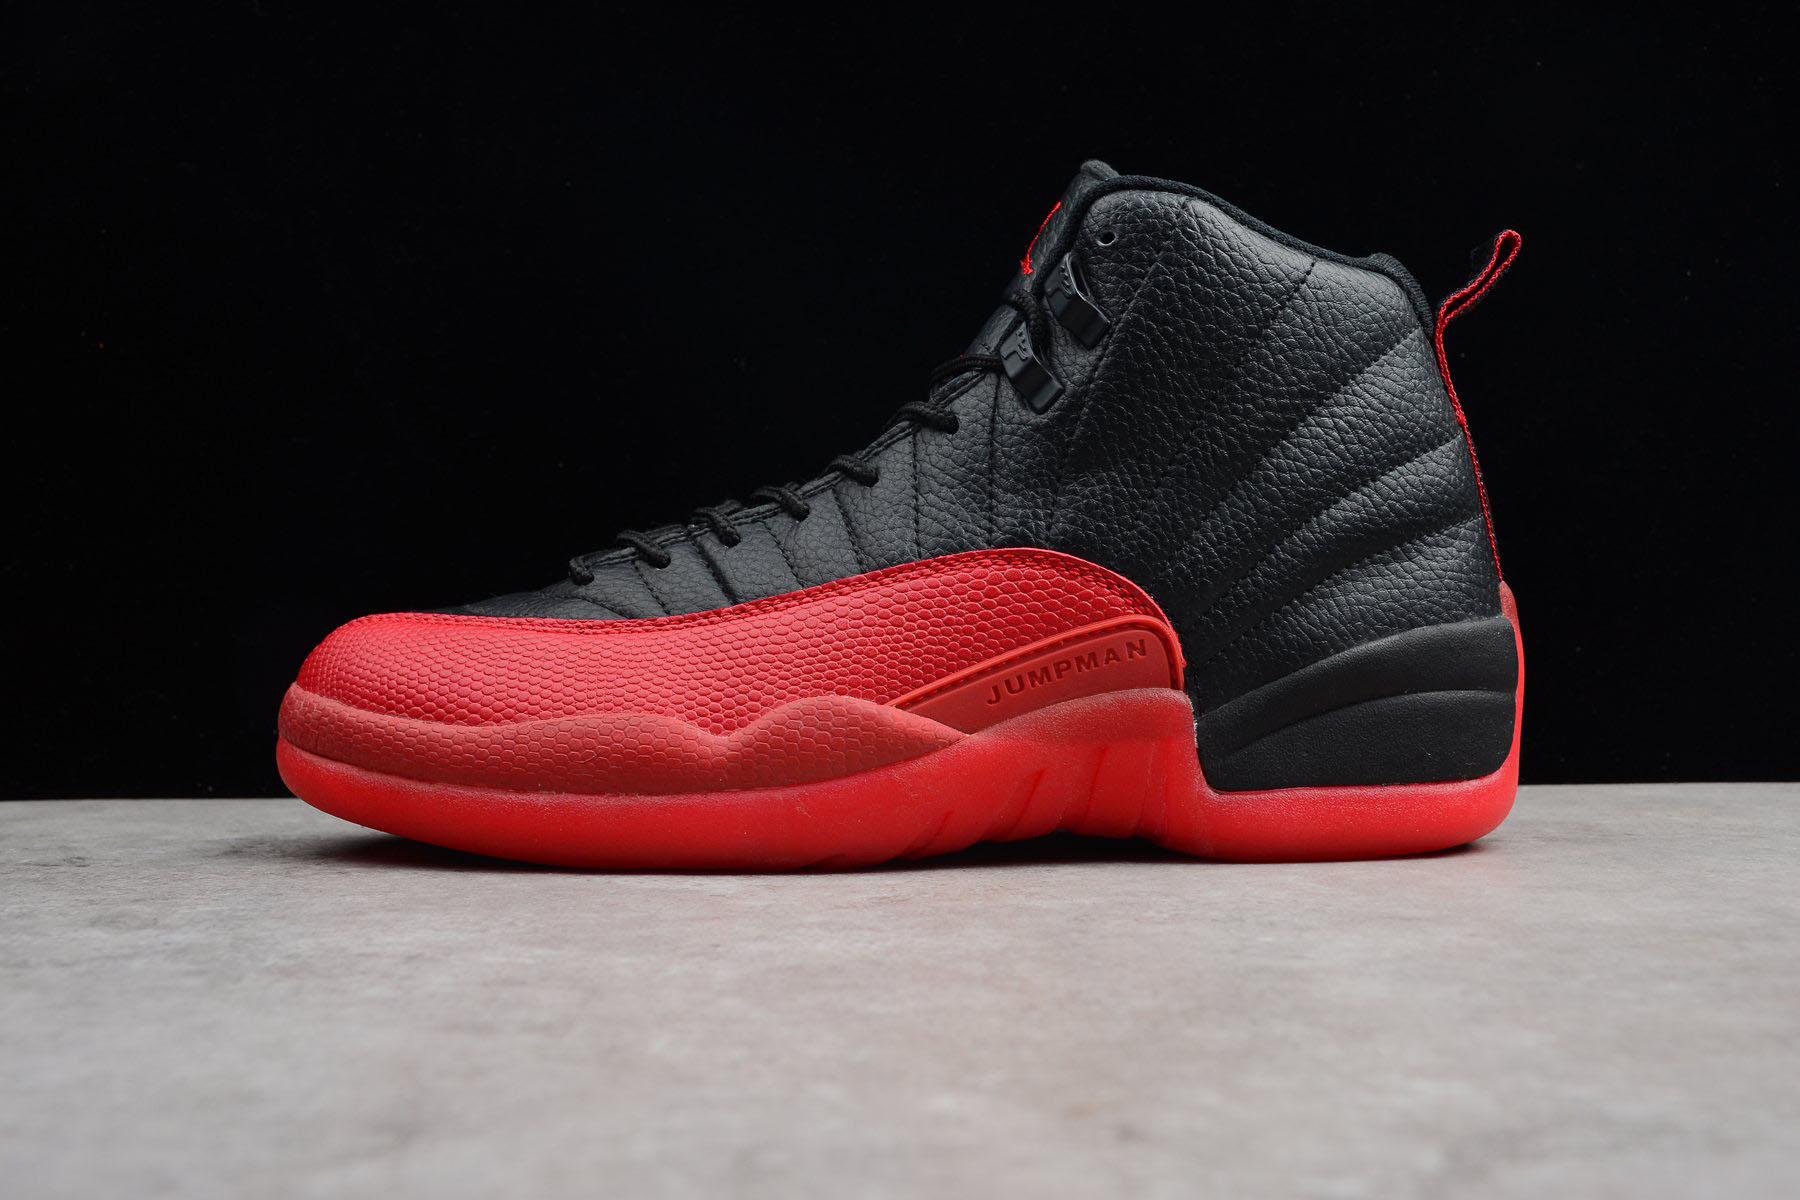 Air Jordan 12 Retro Flu Game Black/Varsity Red 130690-002